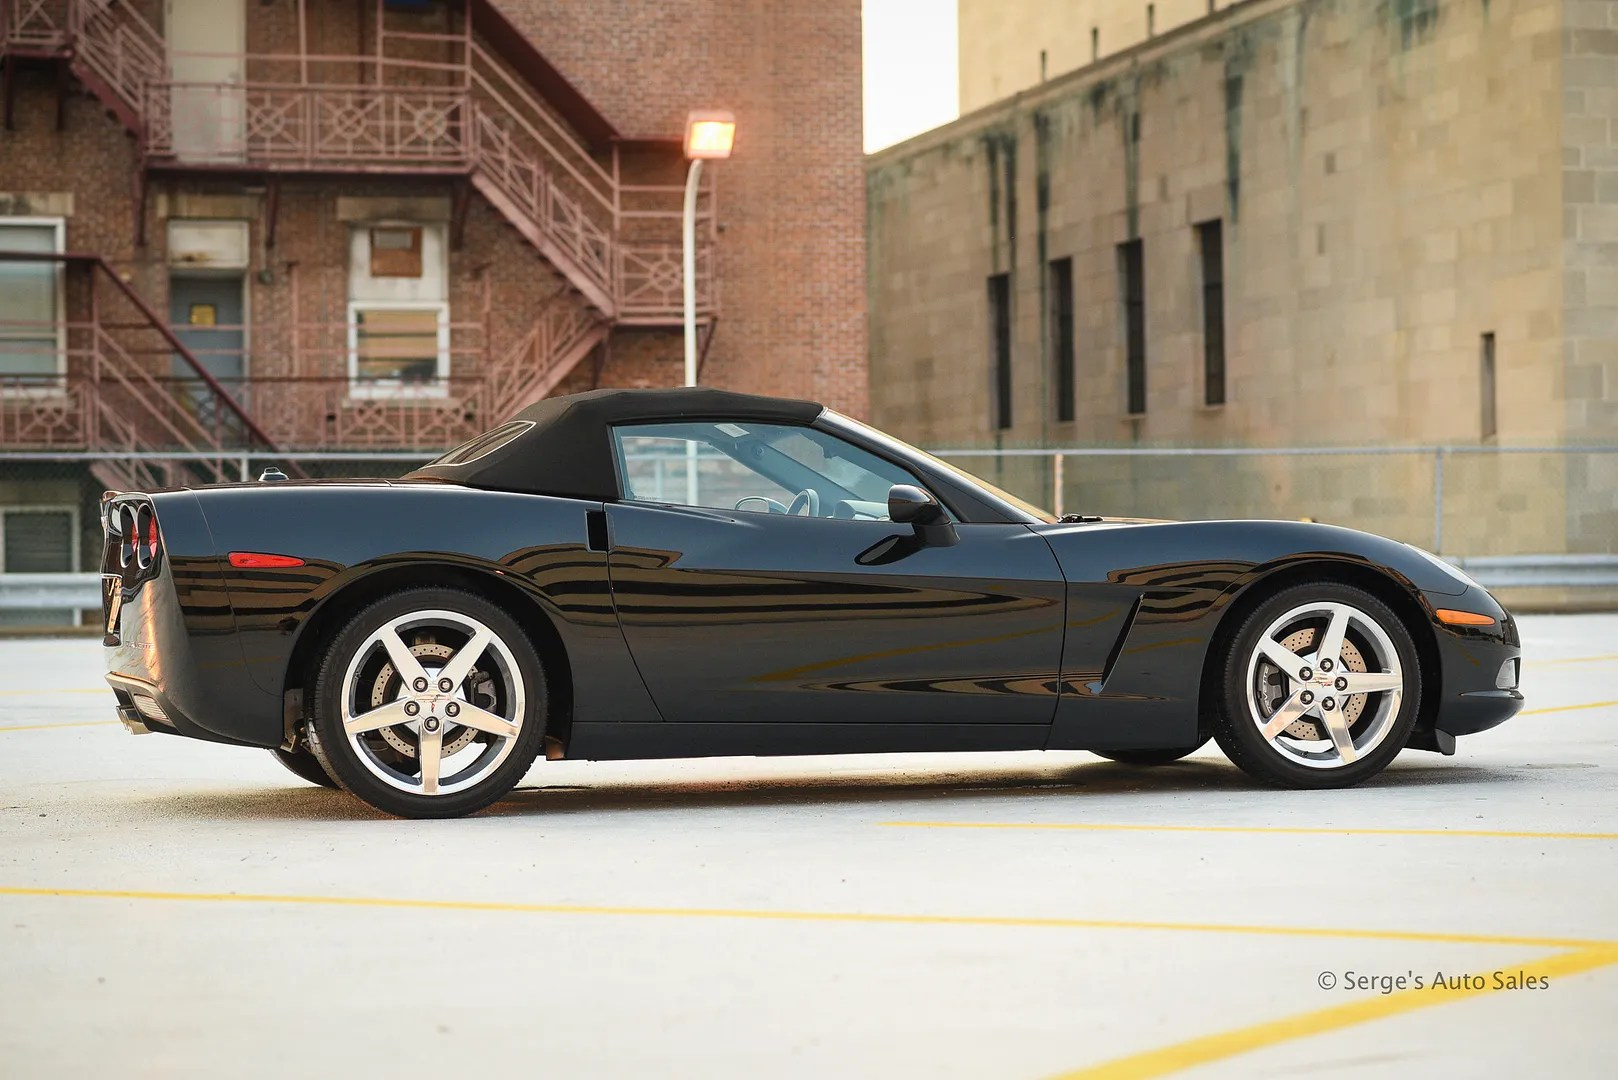 photo 2005-C6-Corvette-Convertible-For-Sale-Scranton-Serges-Auto-Sales-dealer--9_zpsffvgkgdc.jpg